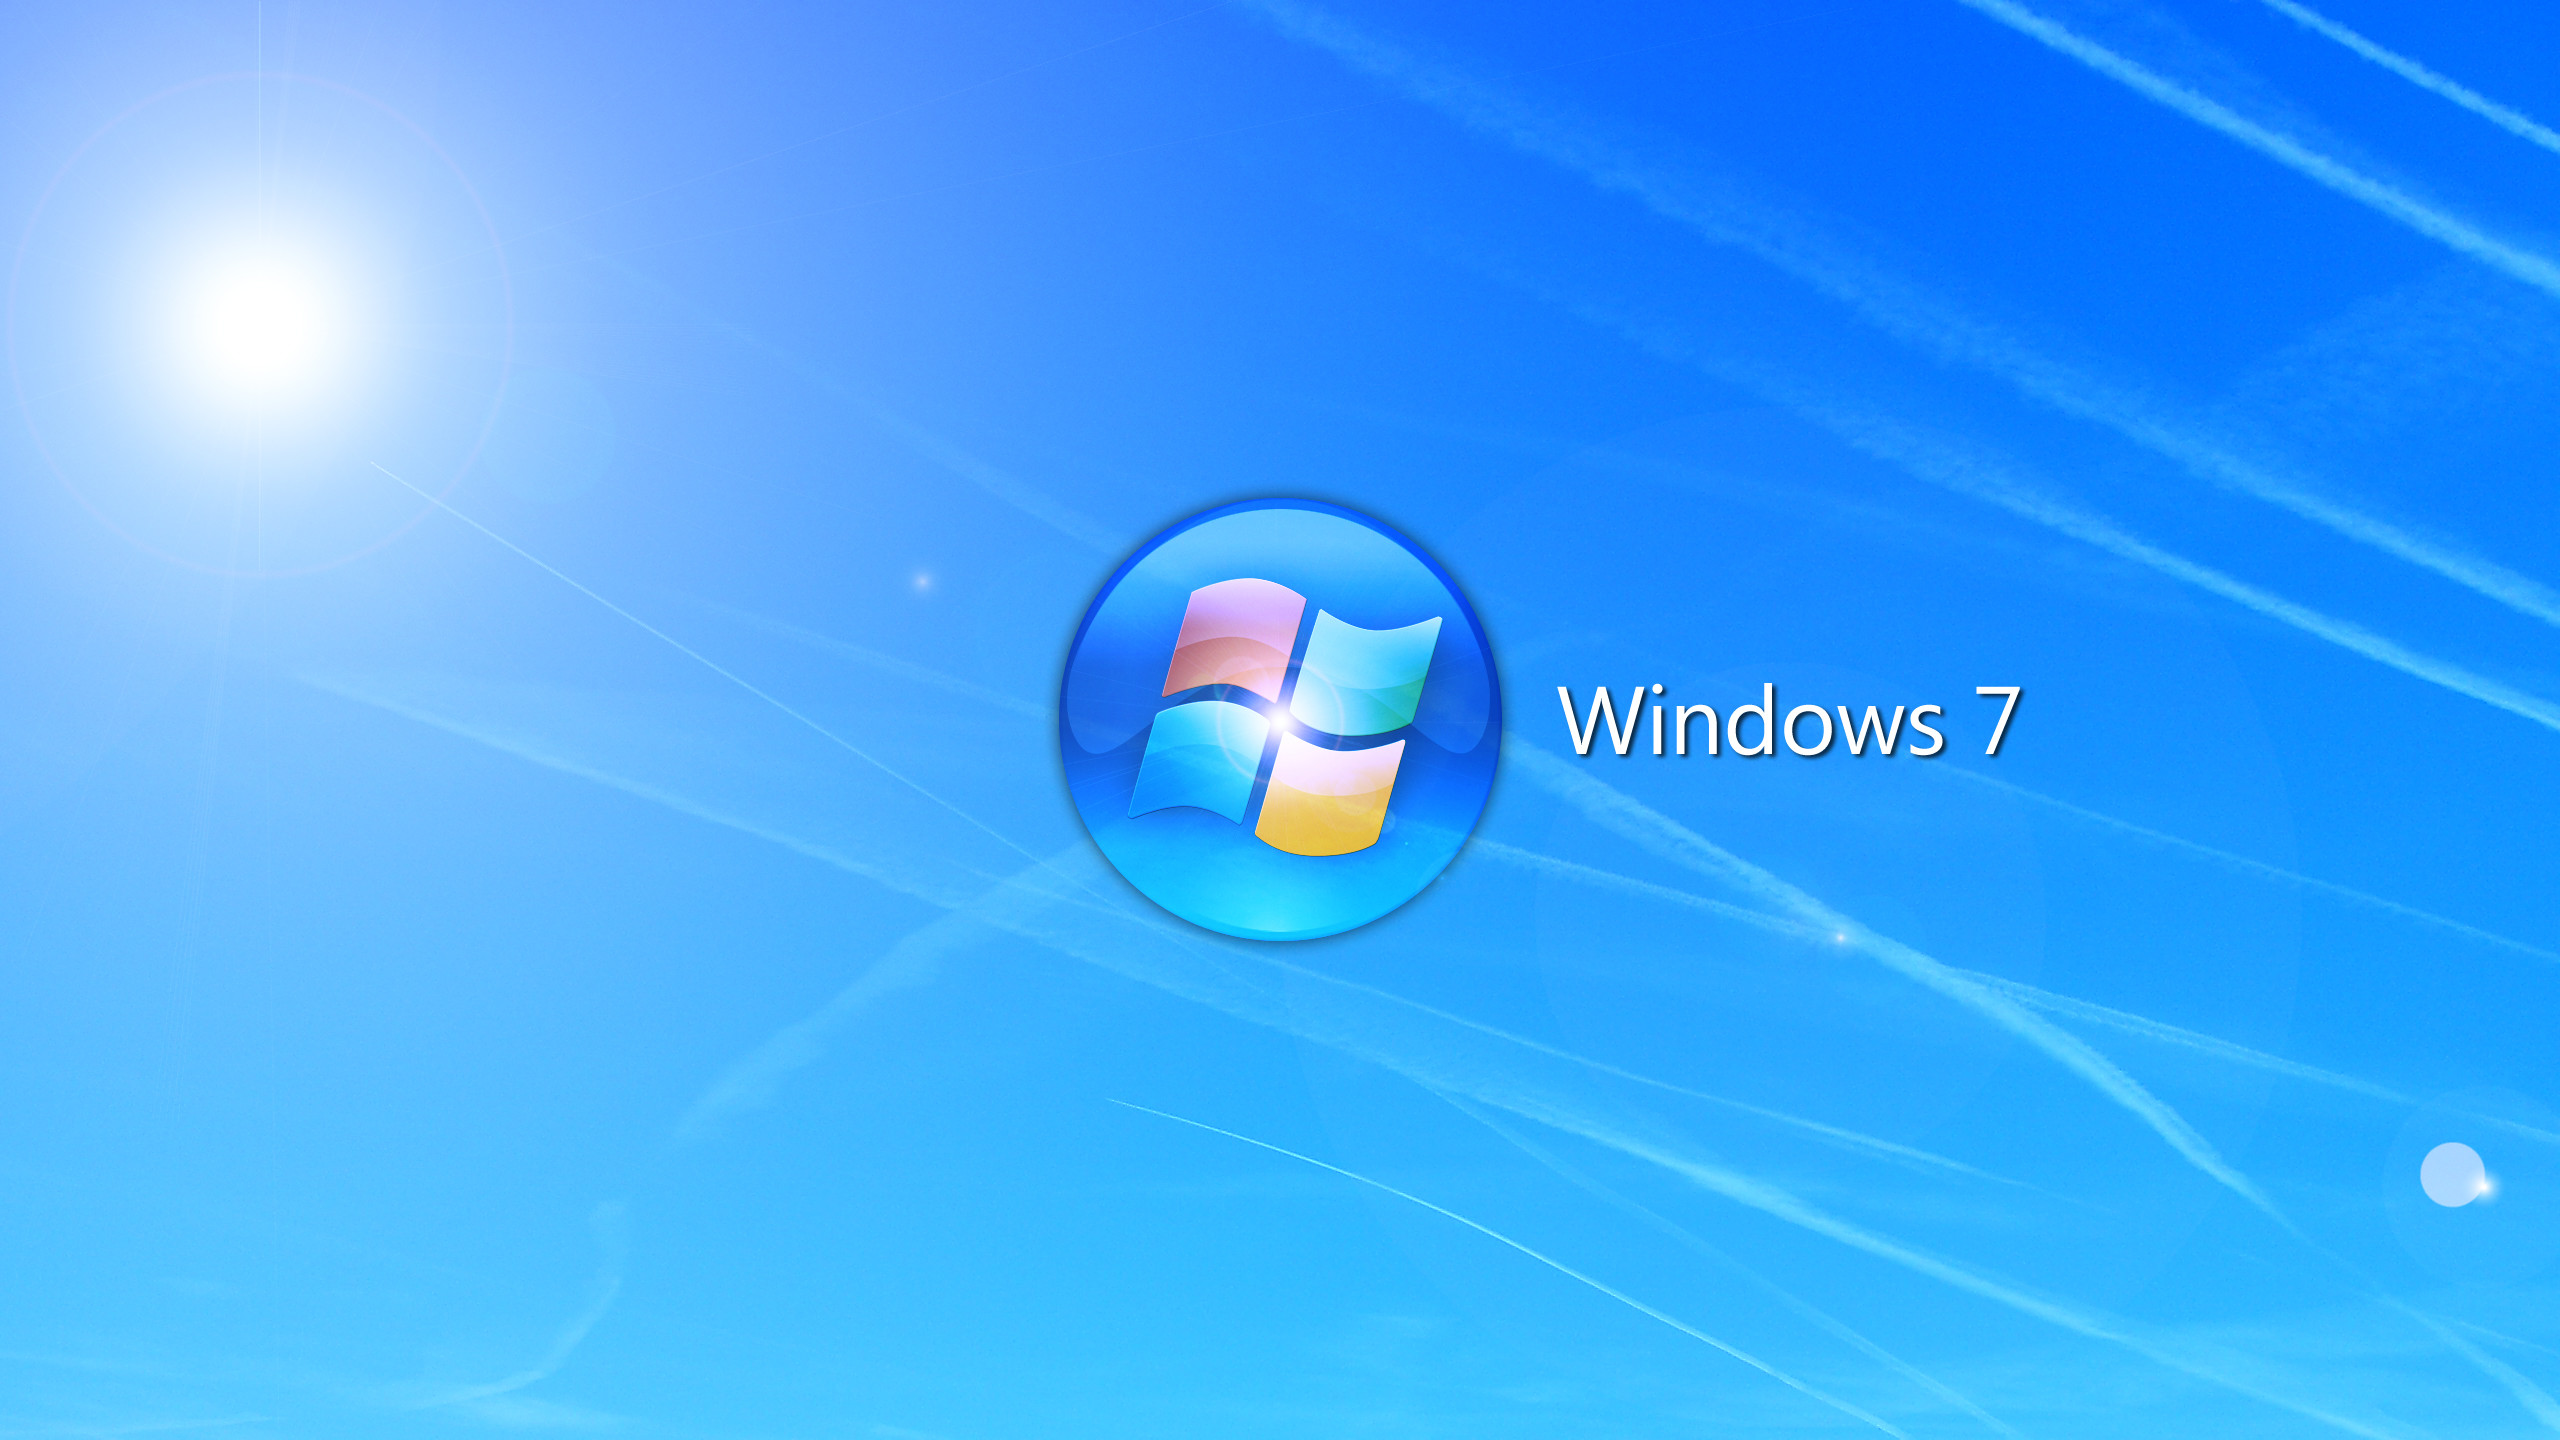 2560x1440 Windows 7 Backgrounds Themes (55 Wallpapers)